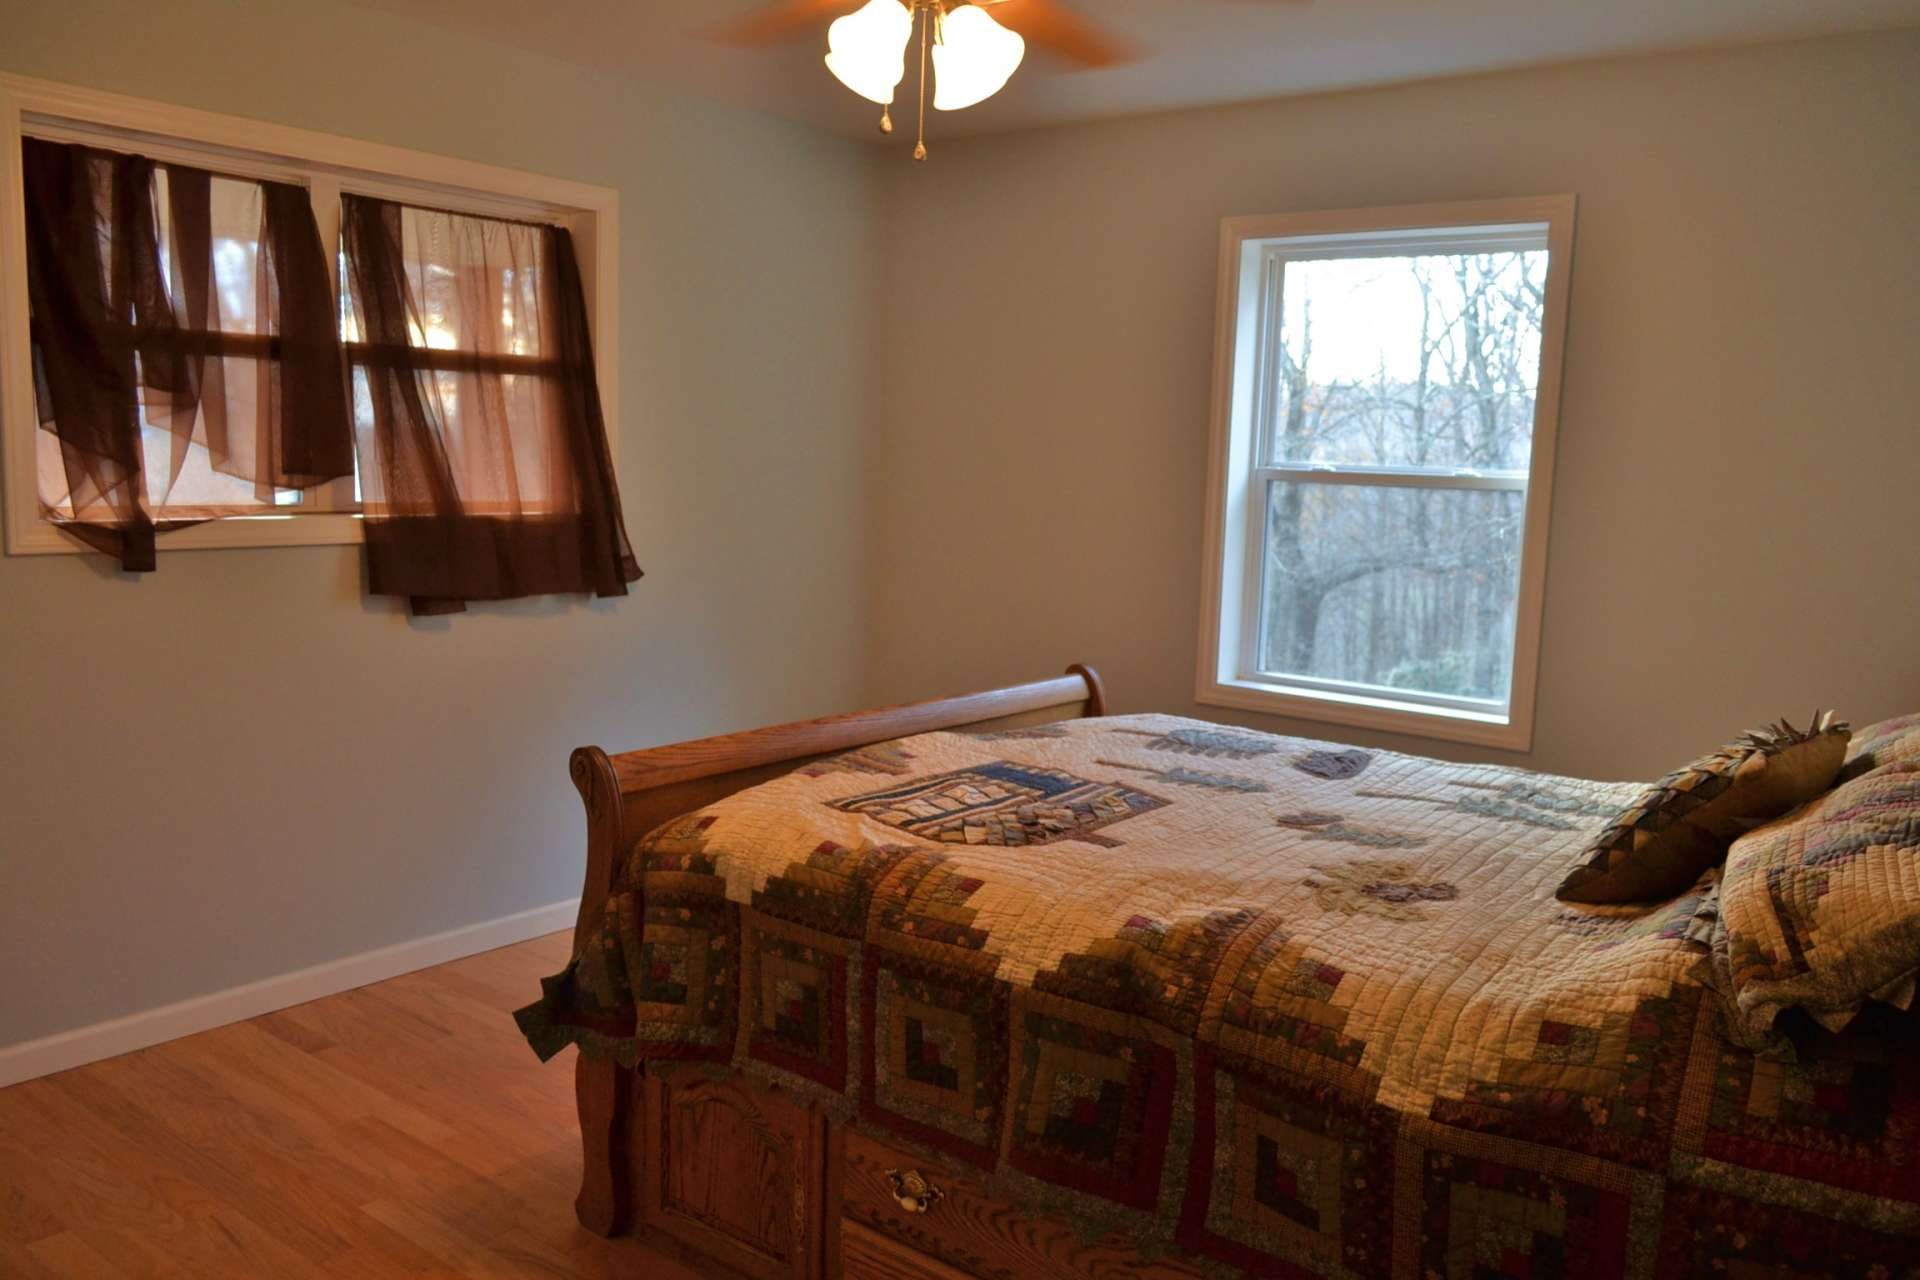 This is the larger of the two bedrooms and features lots of windows to enjoy the views and mountain scenery.